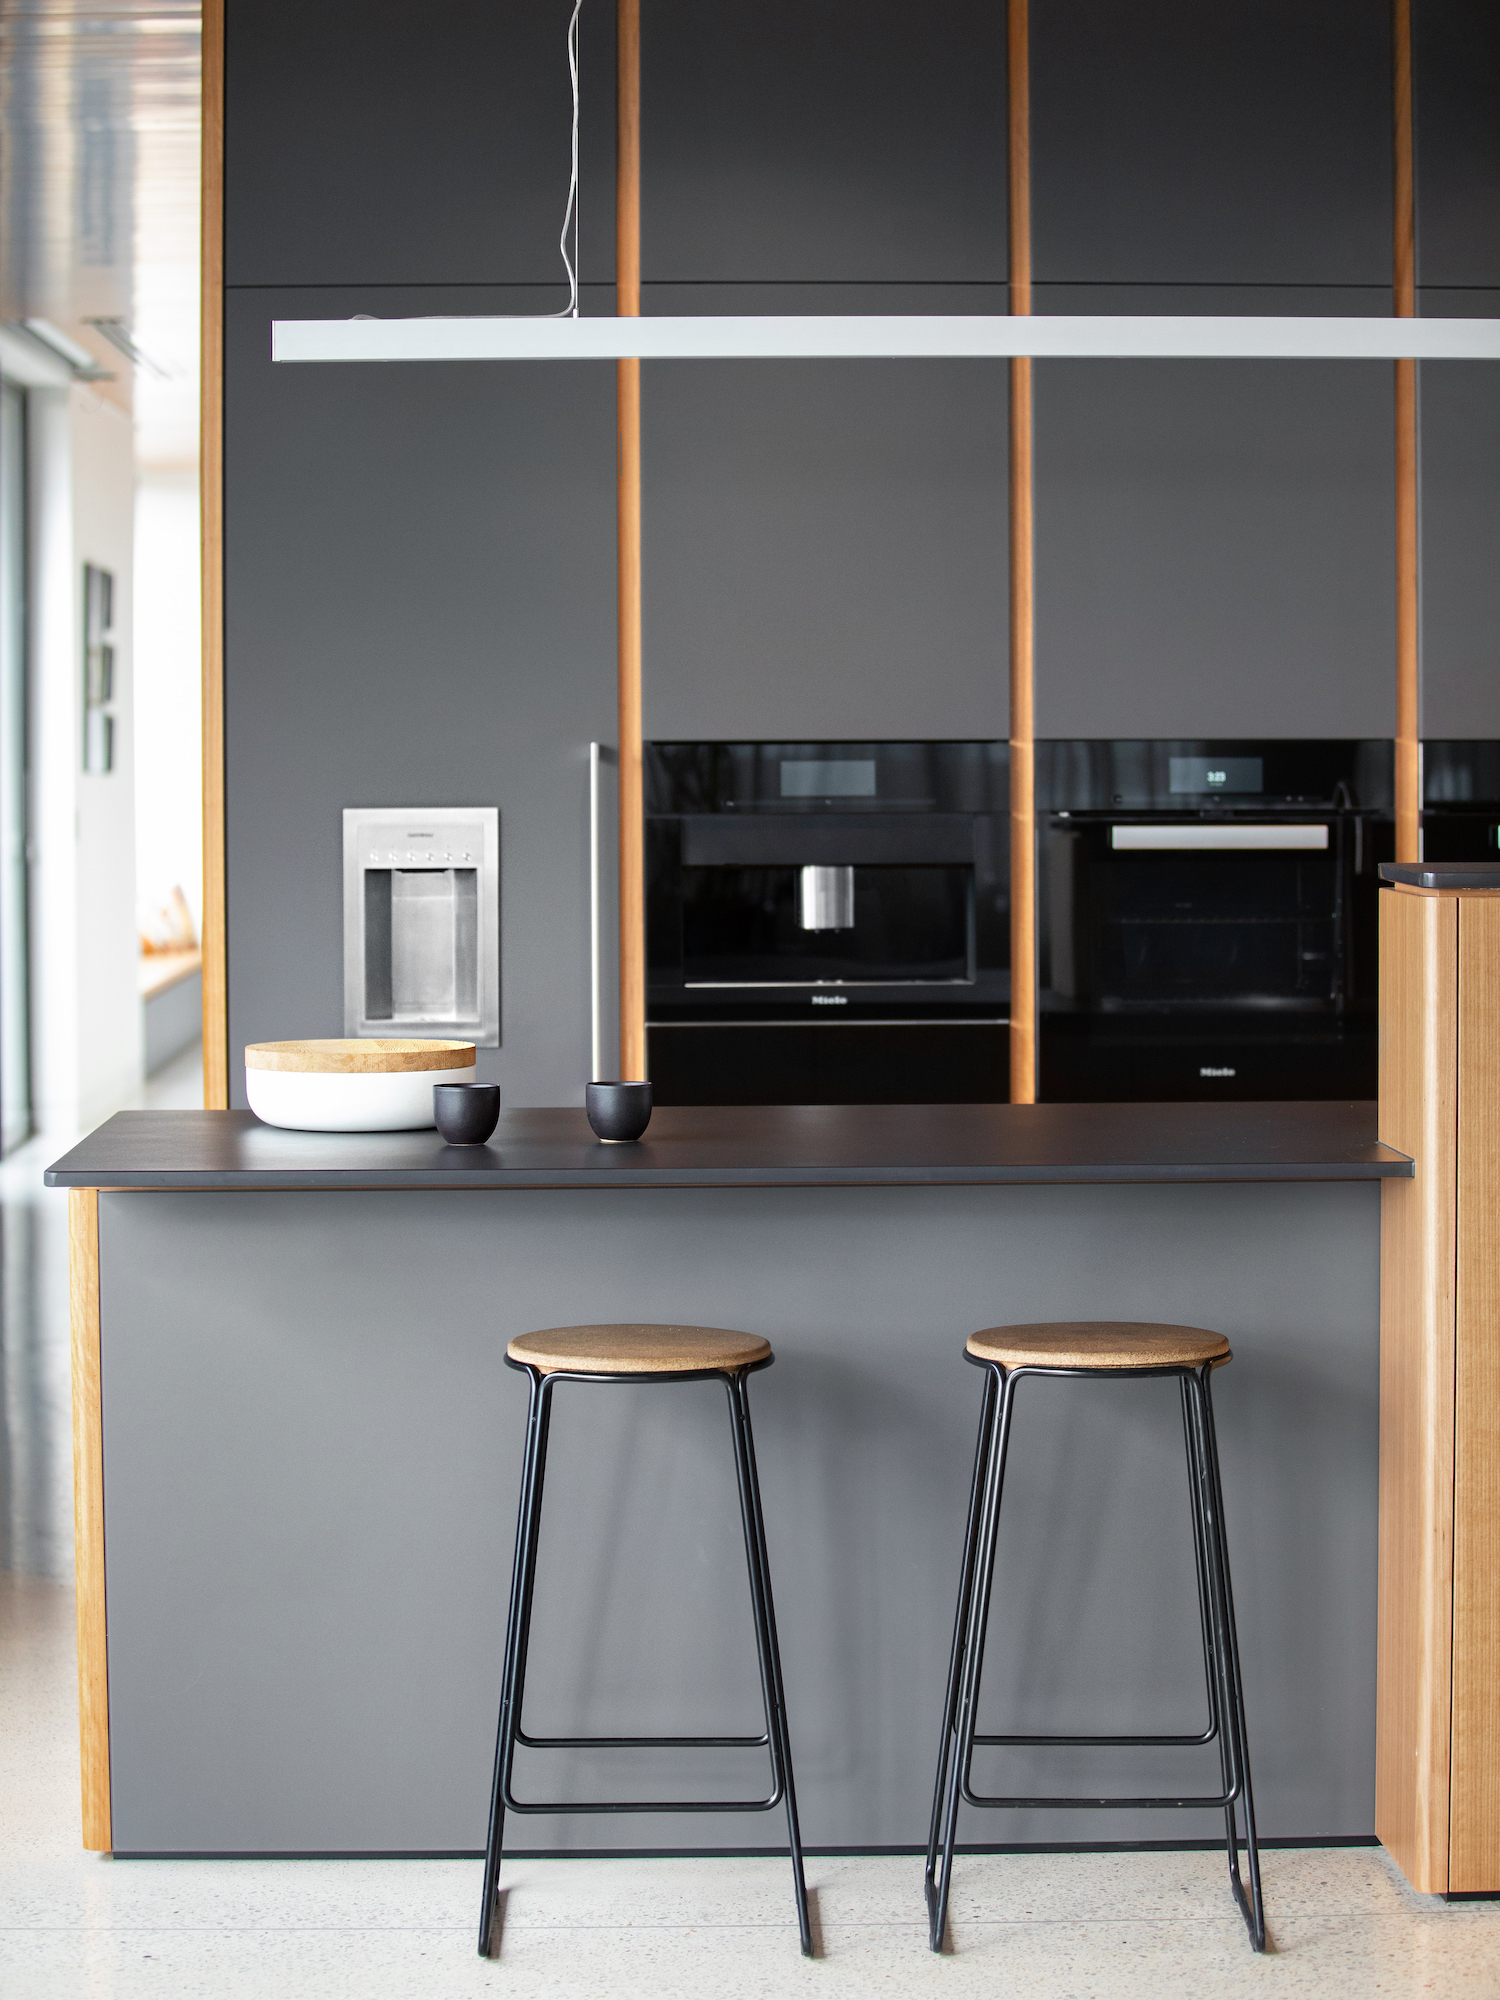 est living australian interiors cantilever kitchen 7